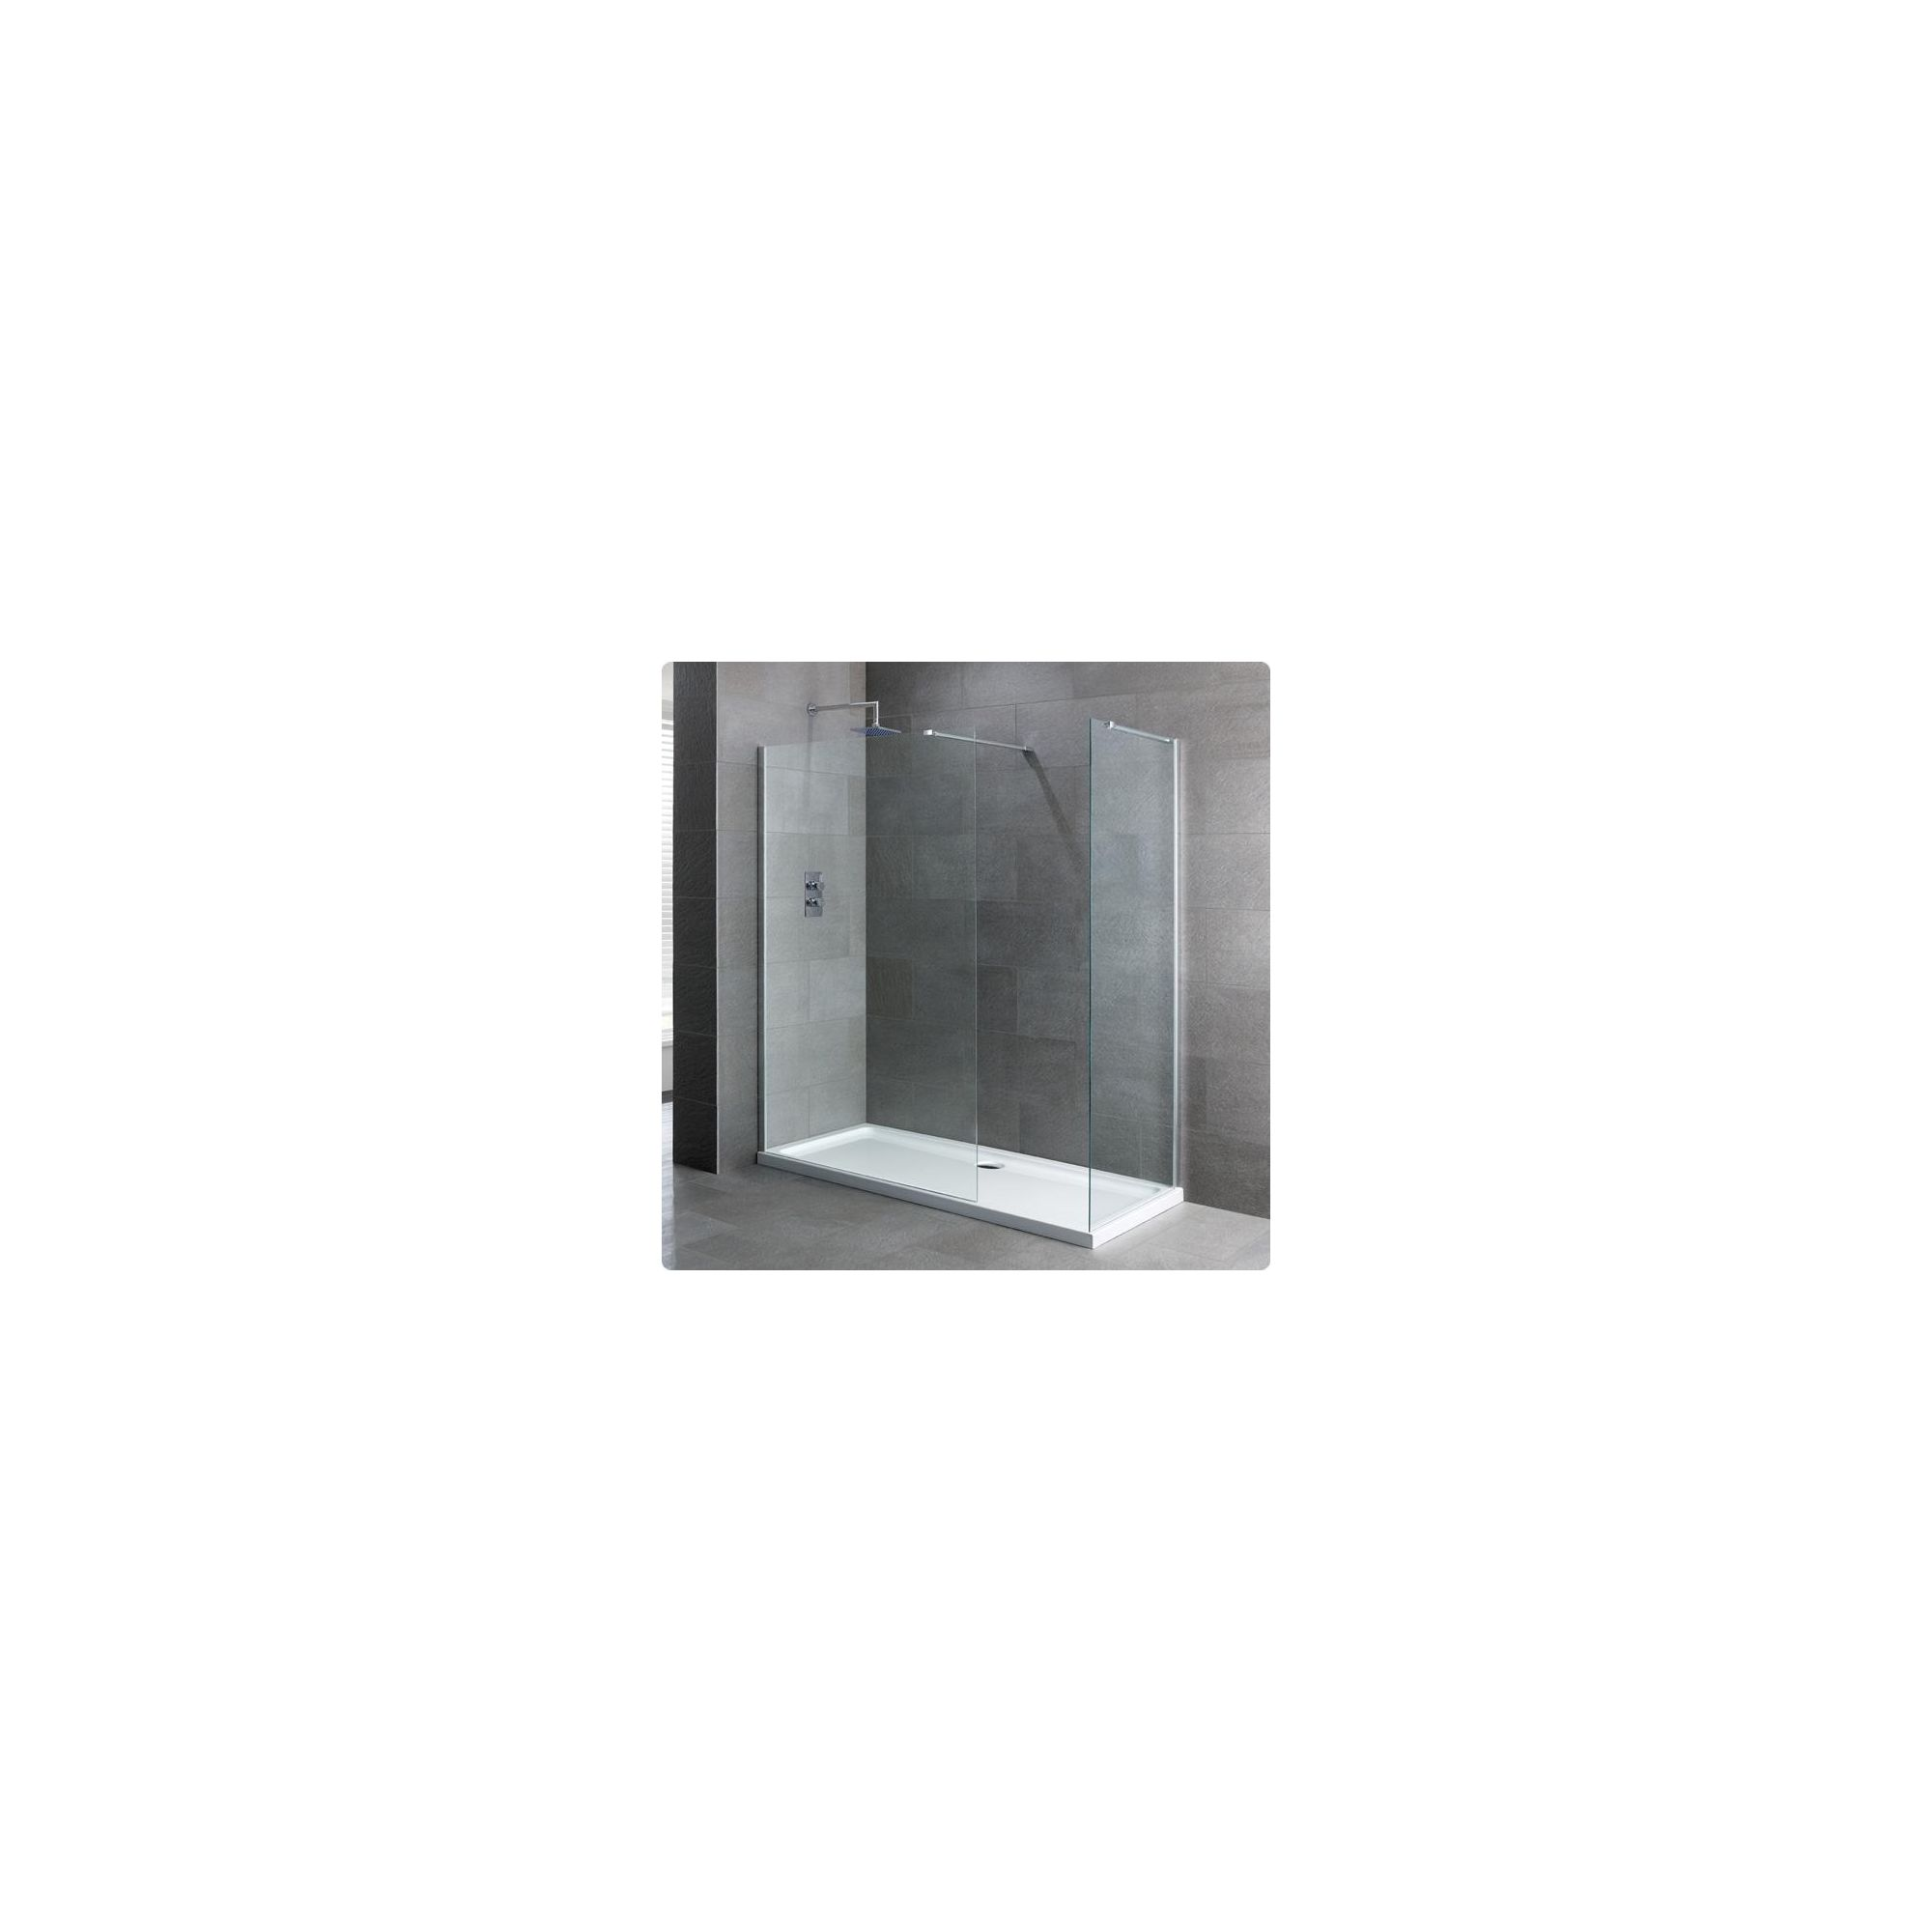 Duchy Select Silver Walk-In Shower Enclosure 1400mm x 800mm, Standard Tray, 6mm Glass at Tesco Direct